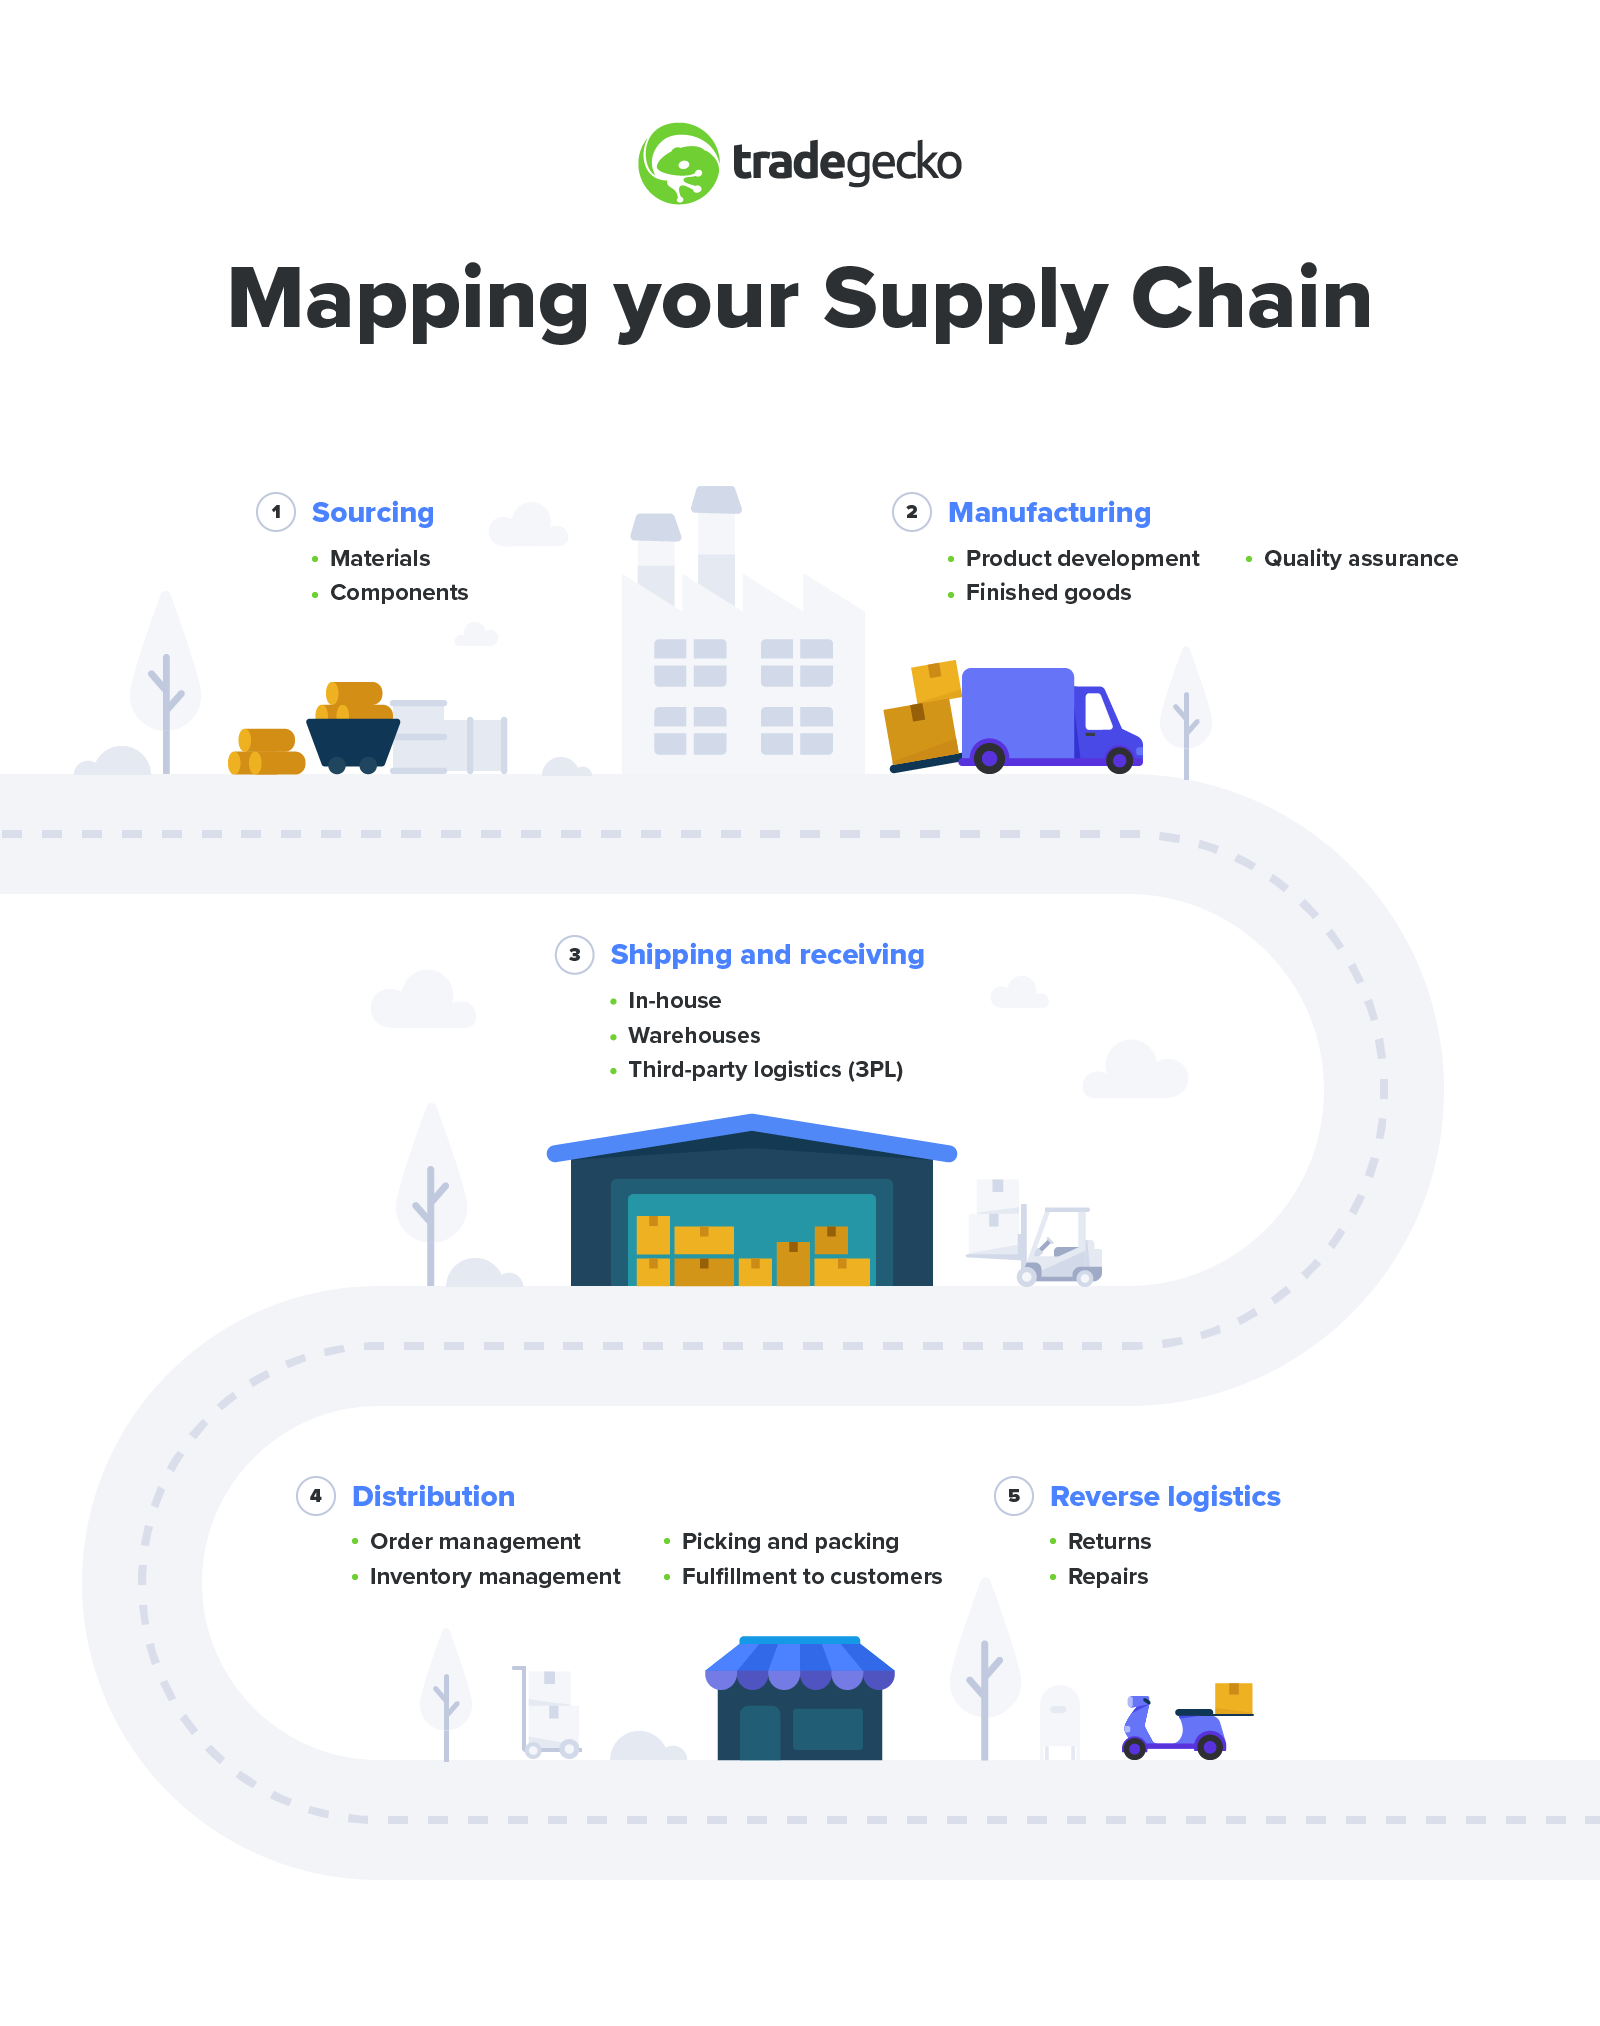 mapping-your-supply-chain@2x